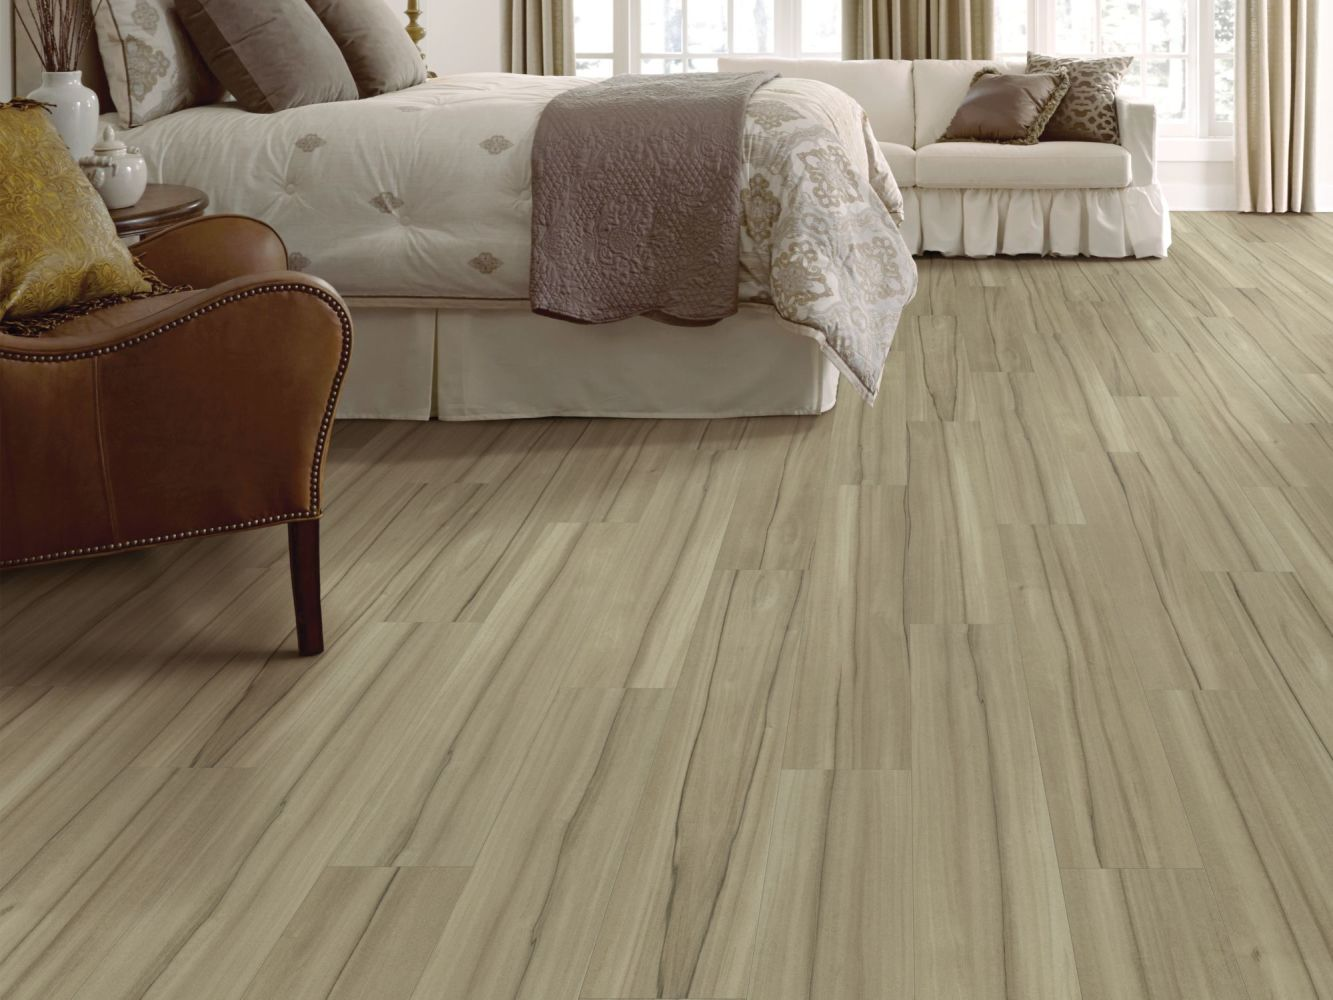 Shaw Floors Resilient Residential Trailblazer Spiced Apple 07200_3055V